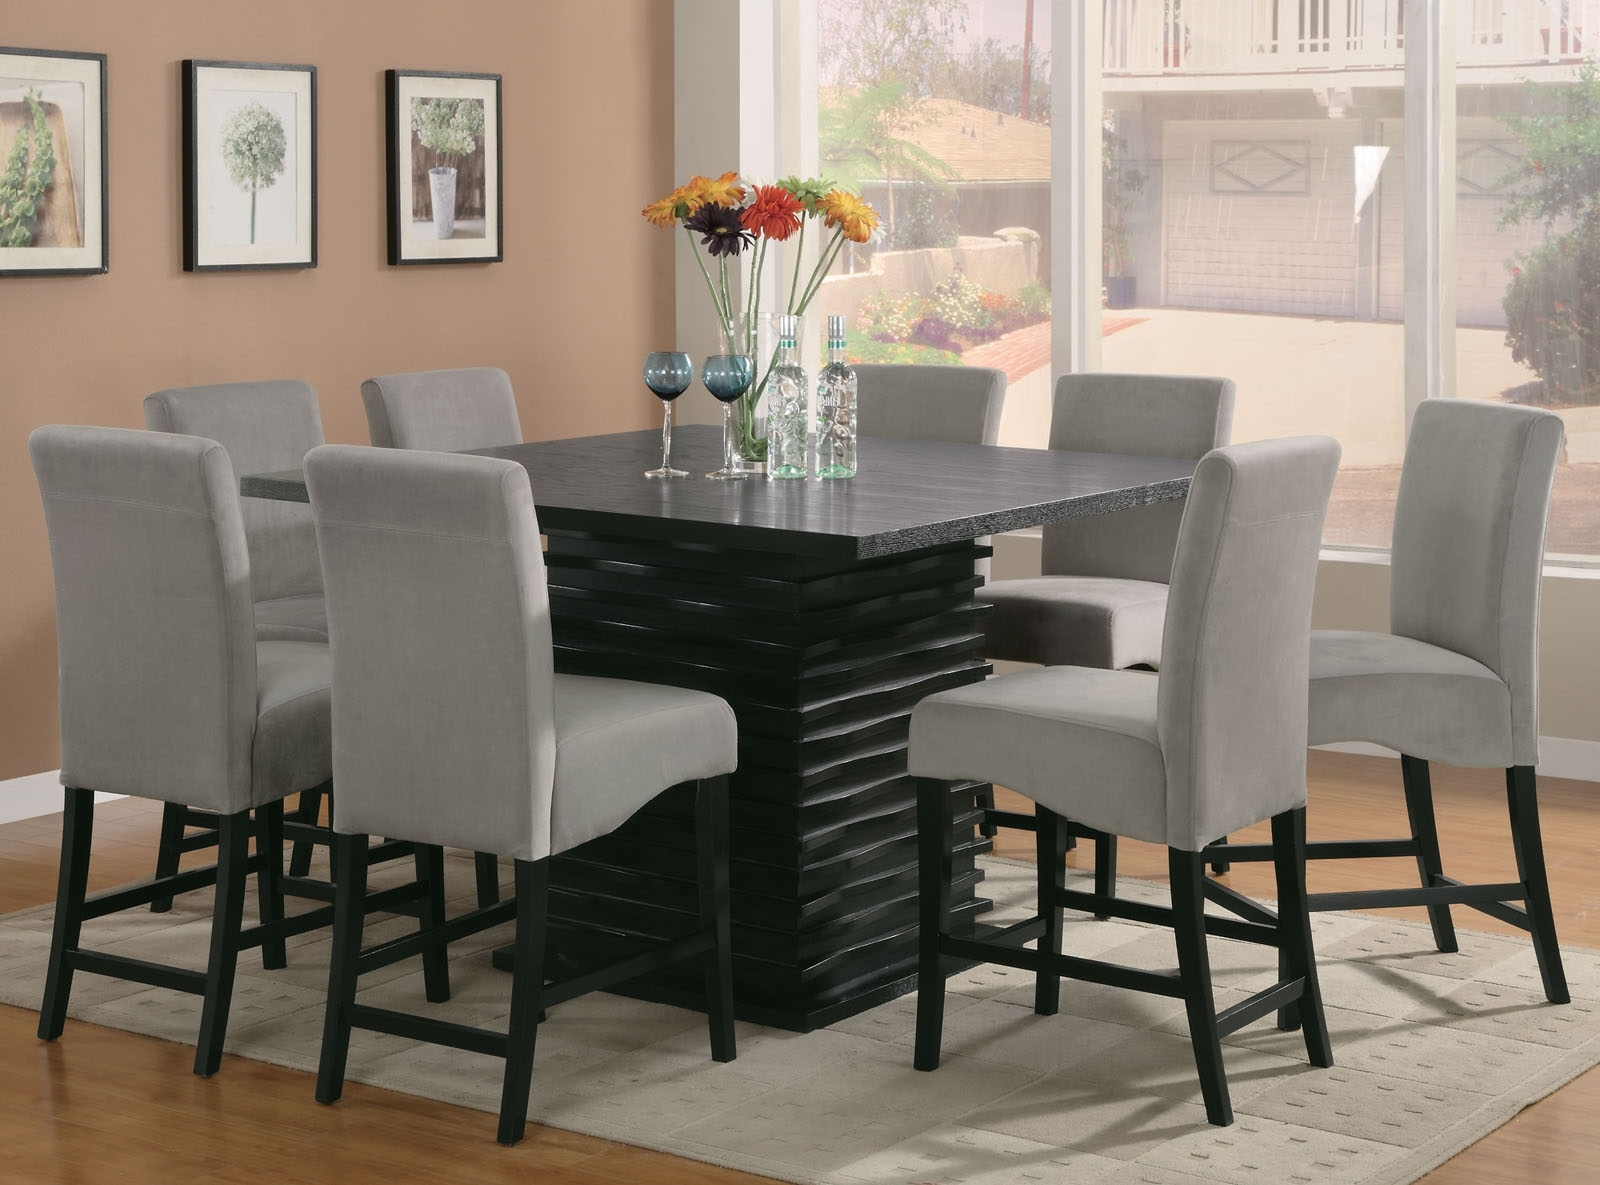 Coaster Stanton 9Pc Counter Height Dining Set In Black With Gray Pertaining To 2017 Dining Tables And 8 Chairs Sets (View 5 of 25)